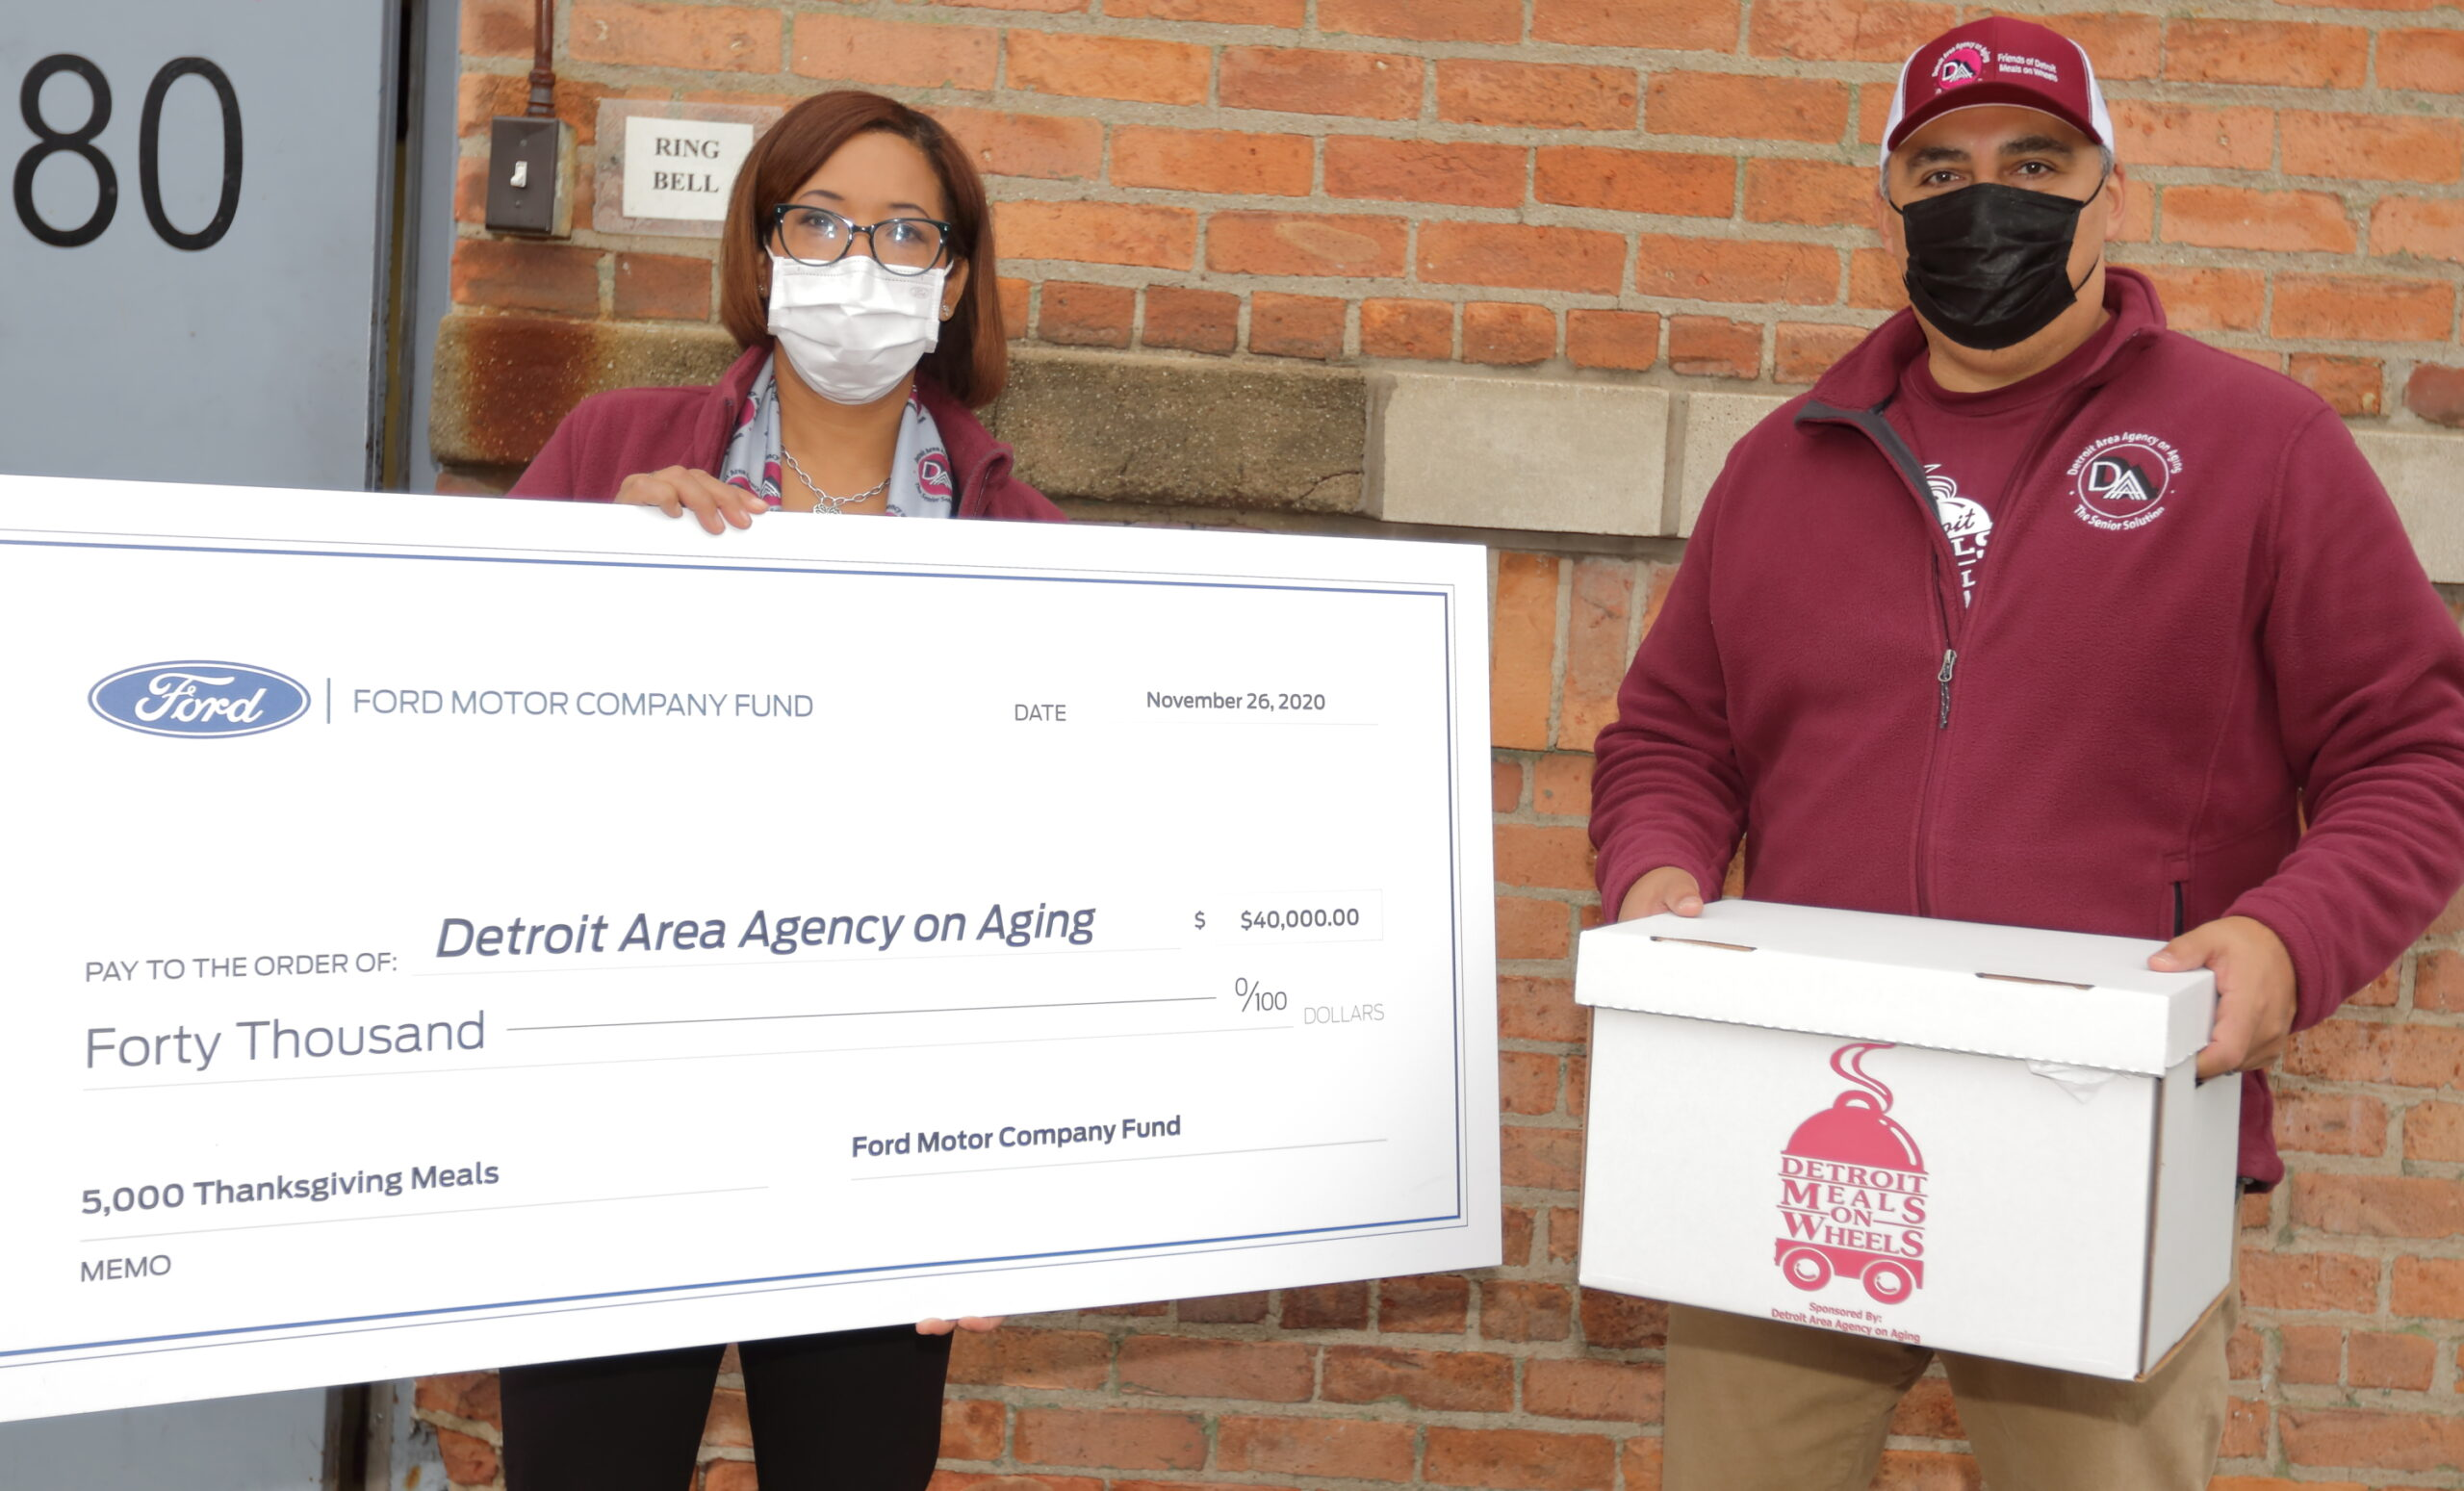 A woman and man standing outside wearing masks while the woman is holding a large check from Ford Motor Company and the man holding a box.